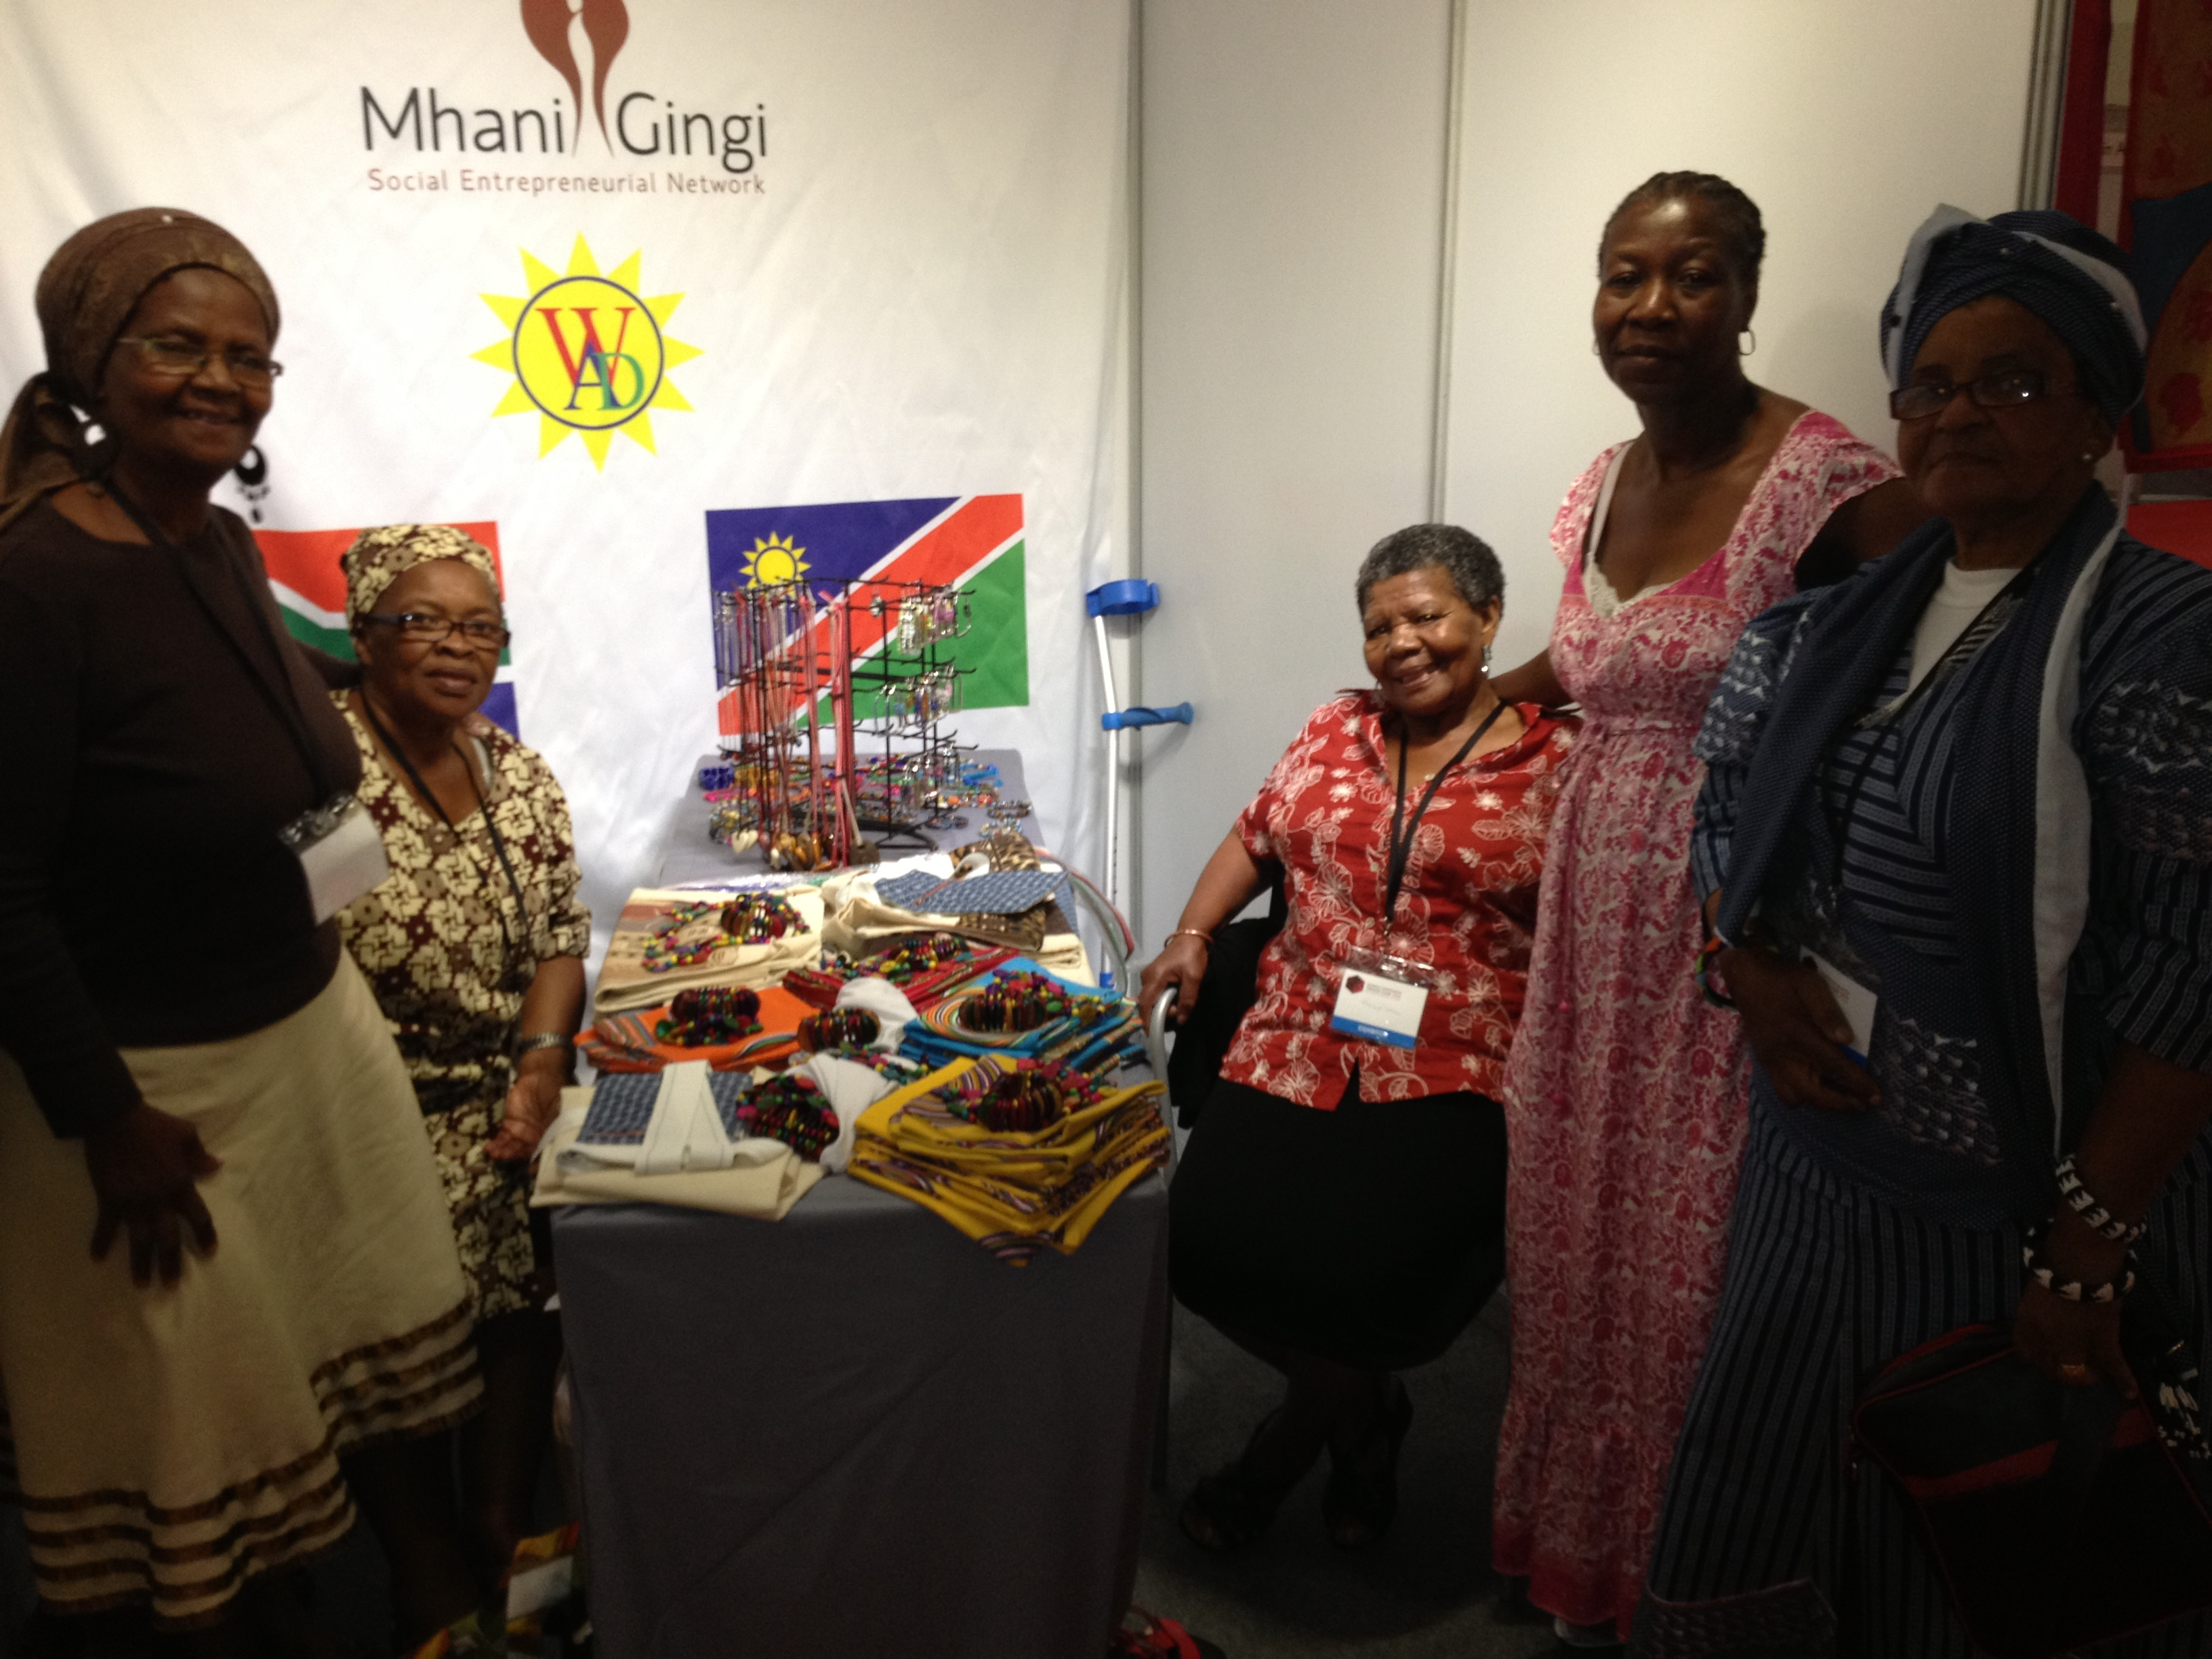 Fair Anita partners with women from Kwazulu-Natal who are skilled at handcrafted beadwork. Our partner group creates opportunity for many members who struggle with TB, HIV/AIDS, and poverty related issues.